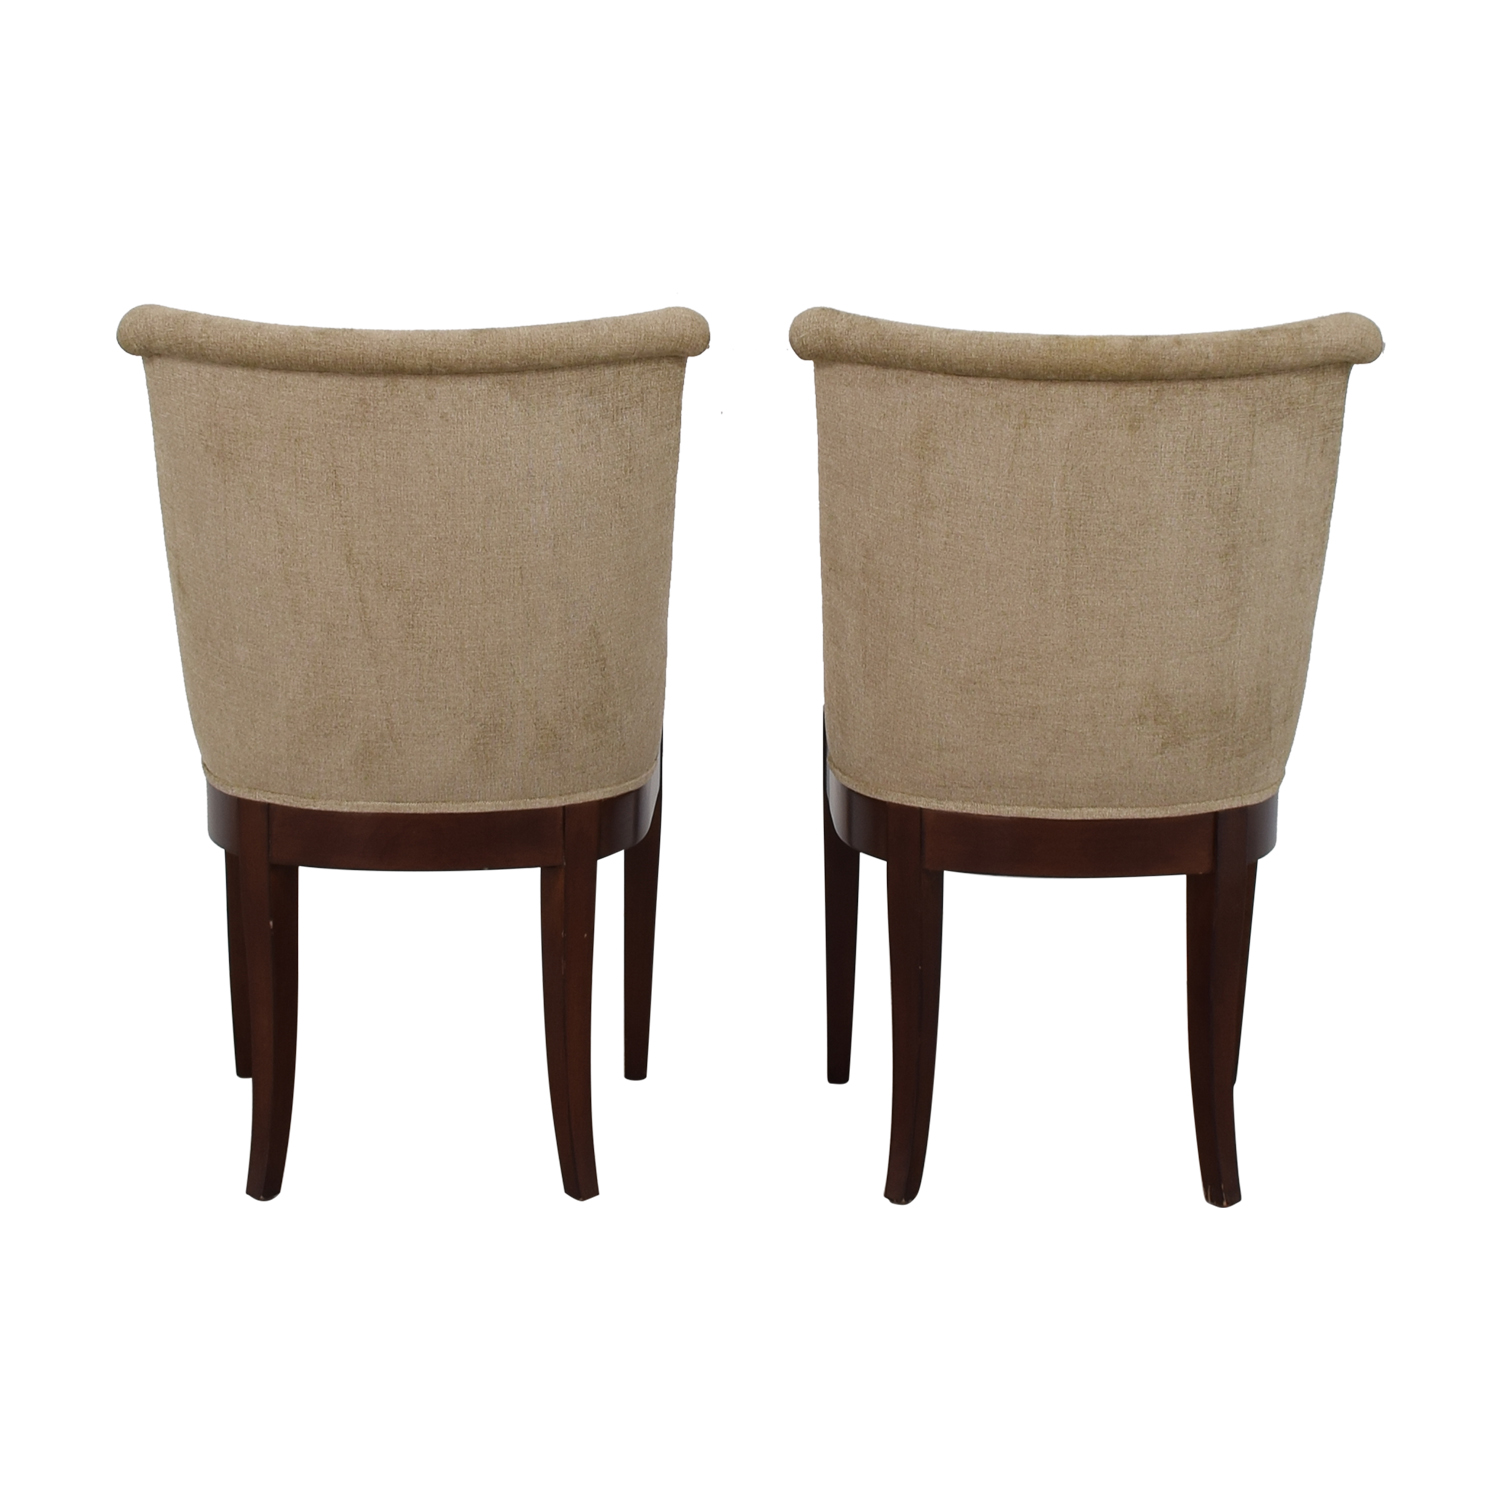 Furniture Masters Furniture Masters Tan Upholstered Chairs nj